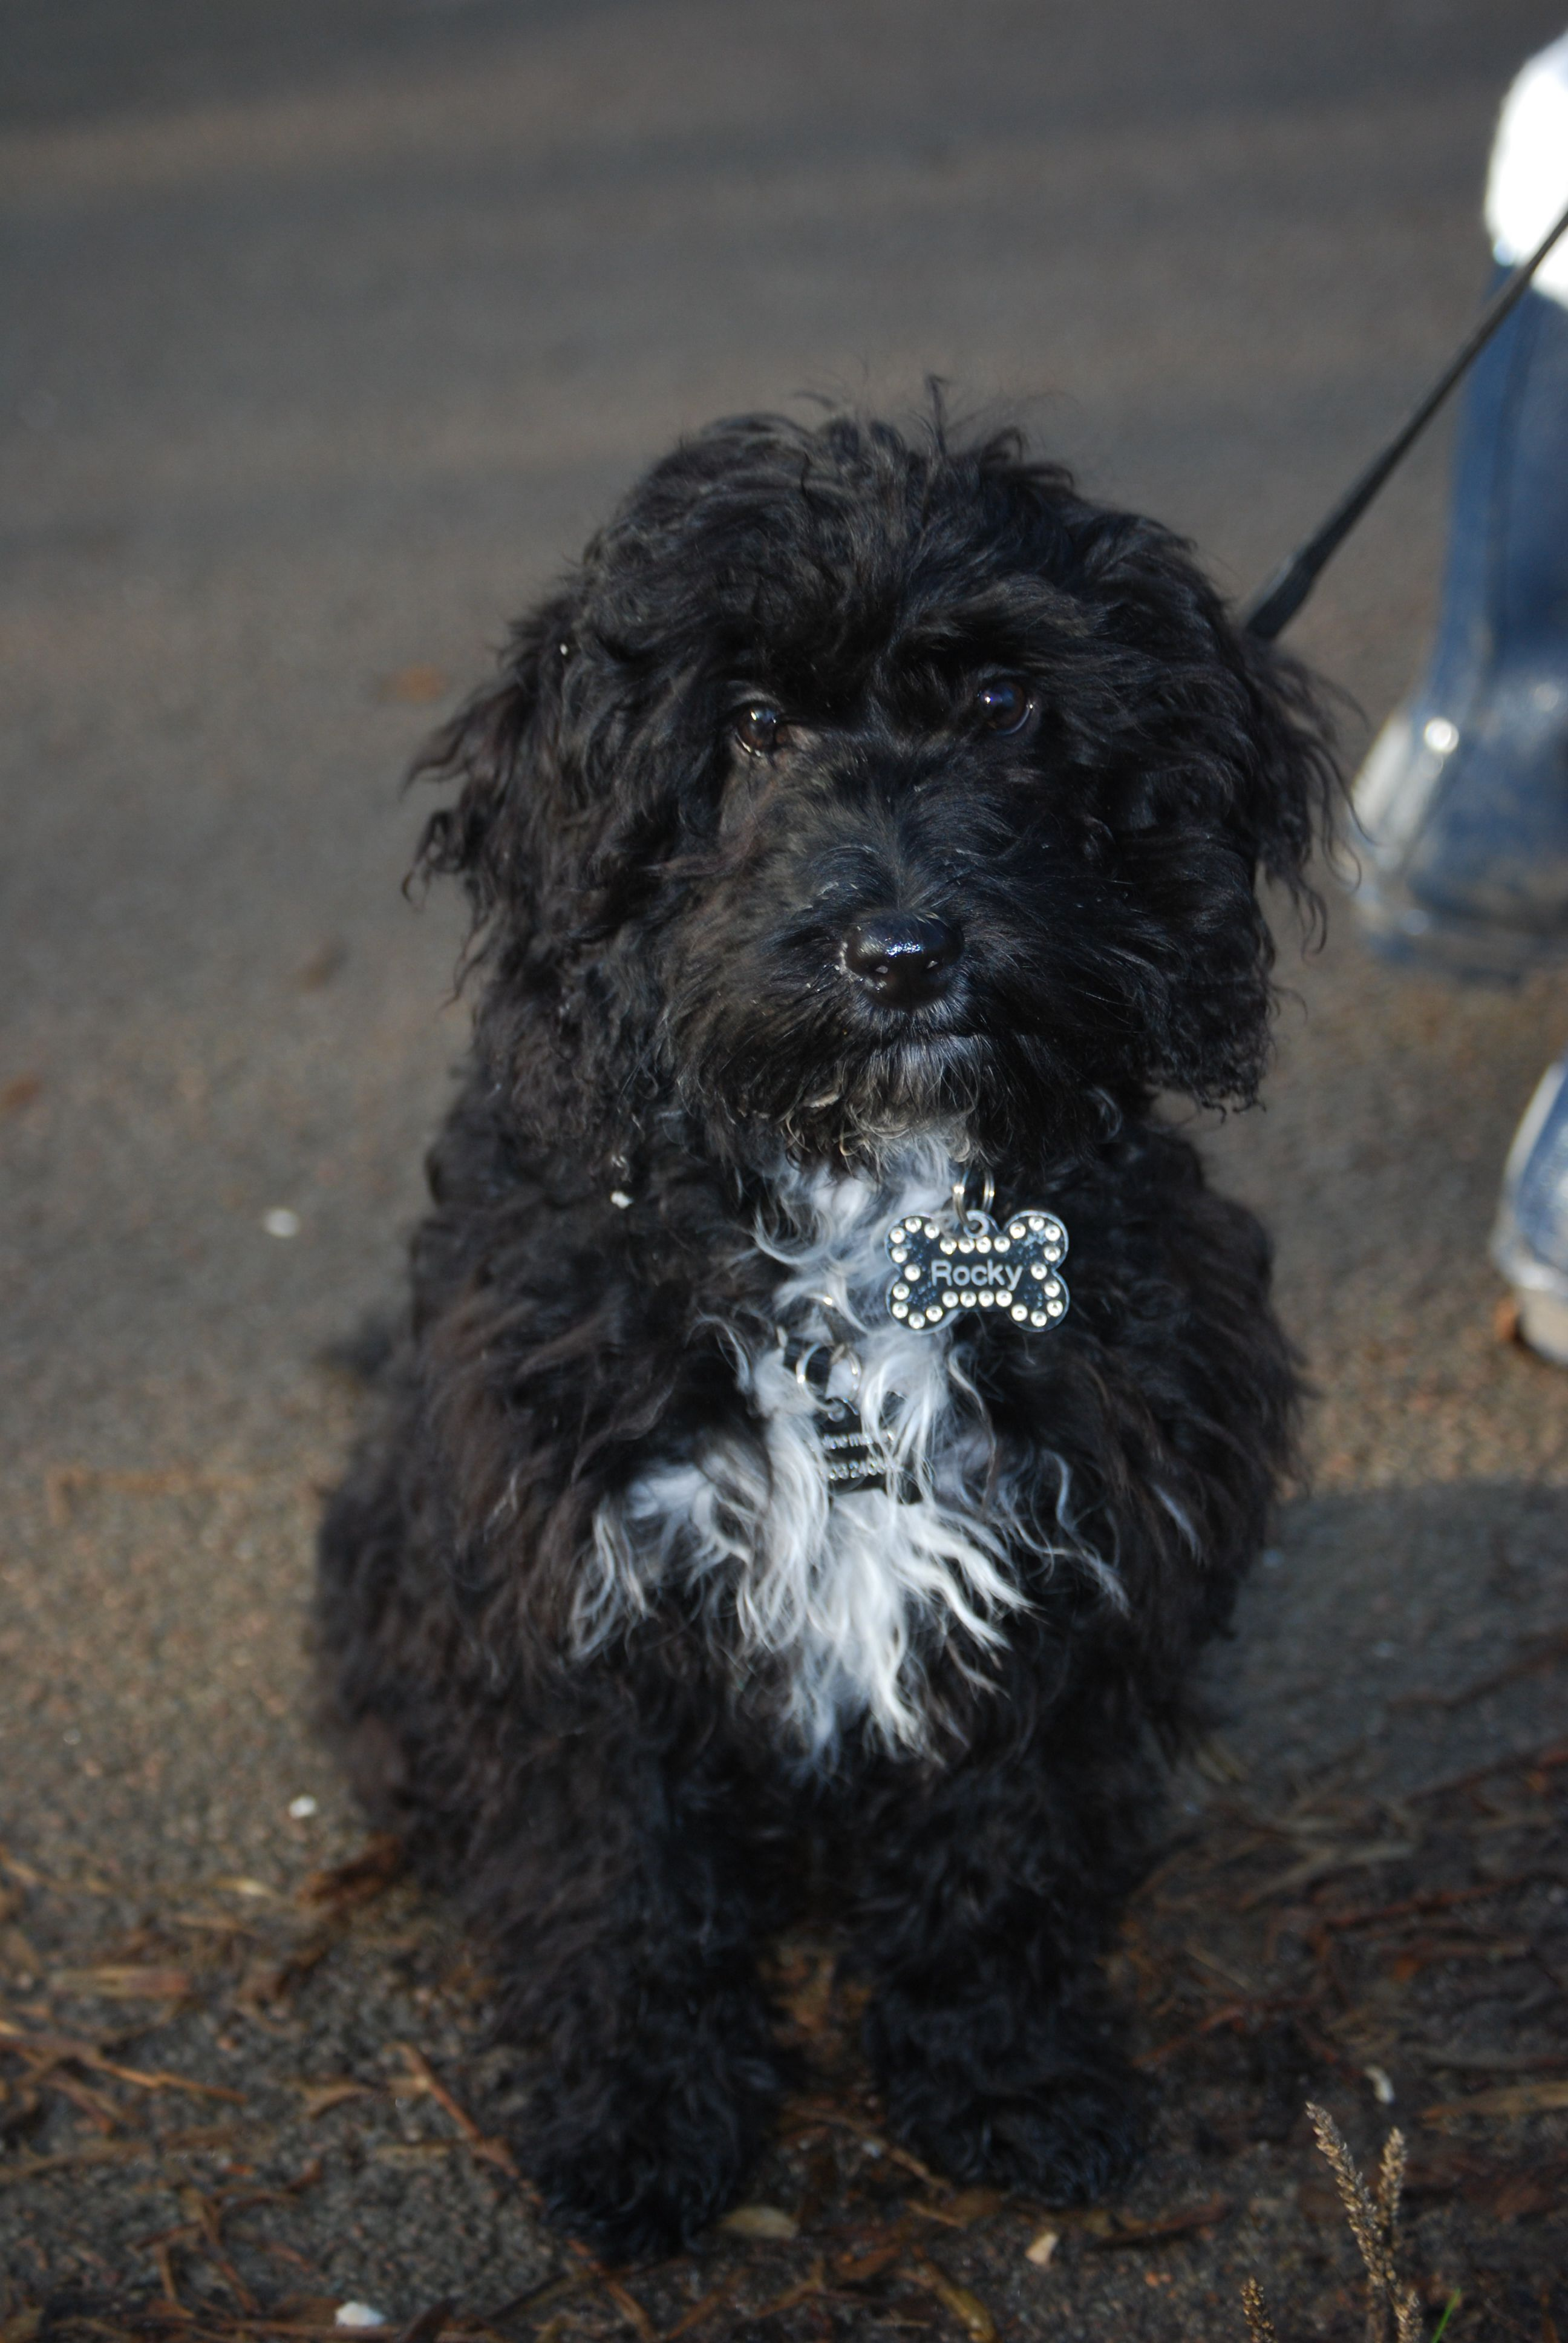 New Puppy Cockapoo 5 Months Old Black White Tuxedo Crazy